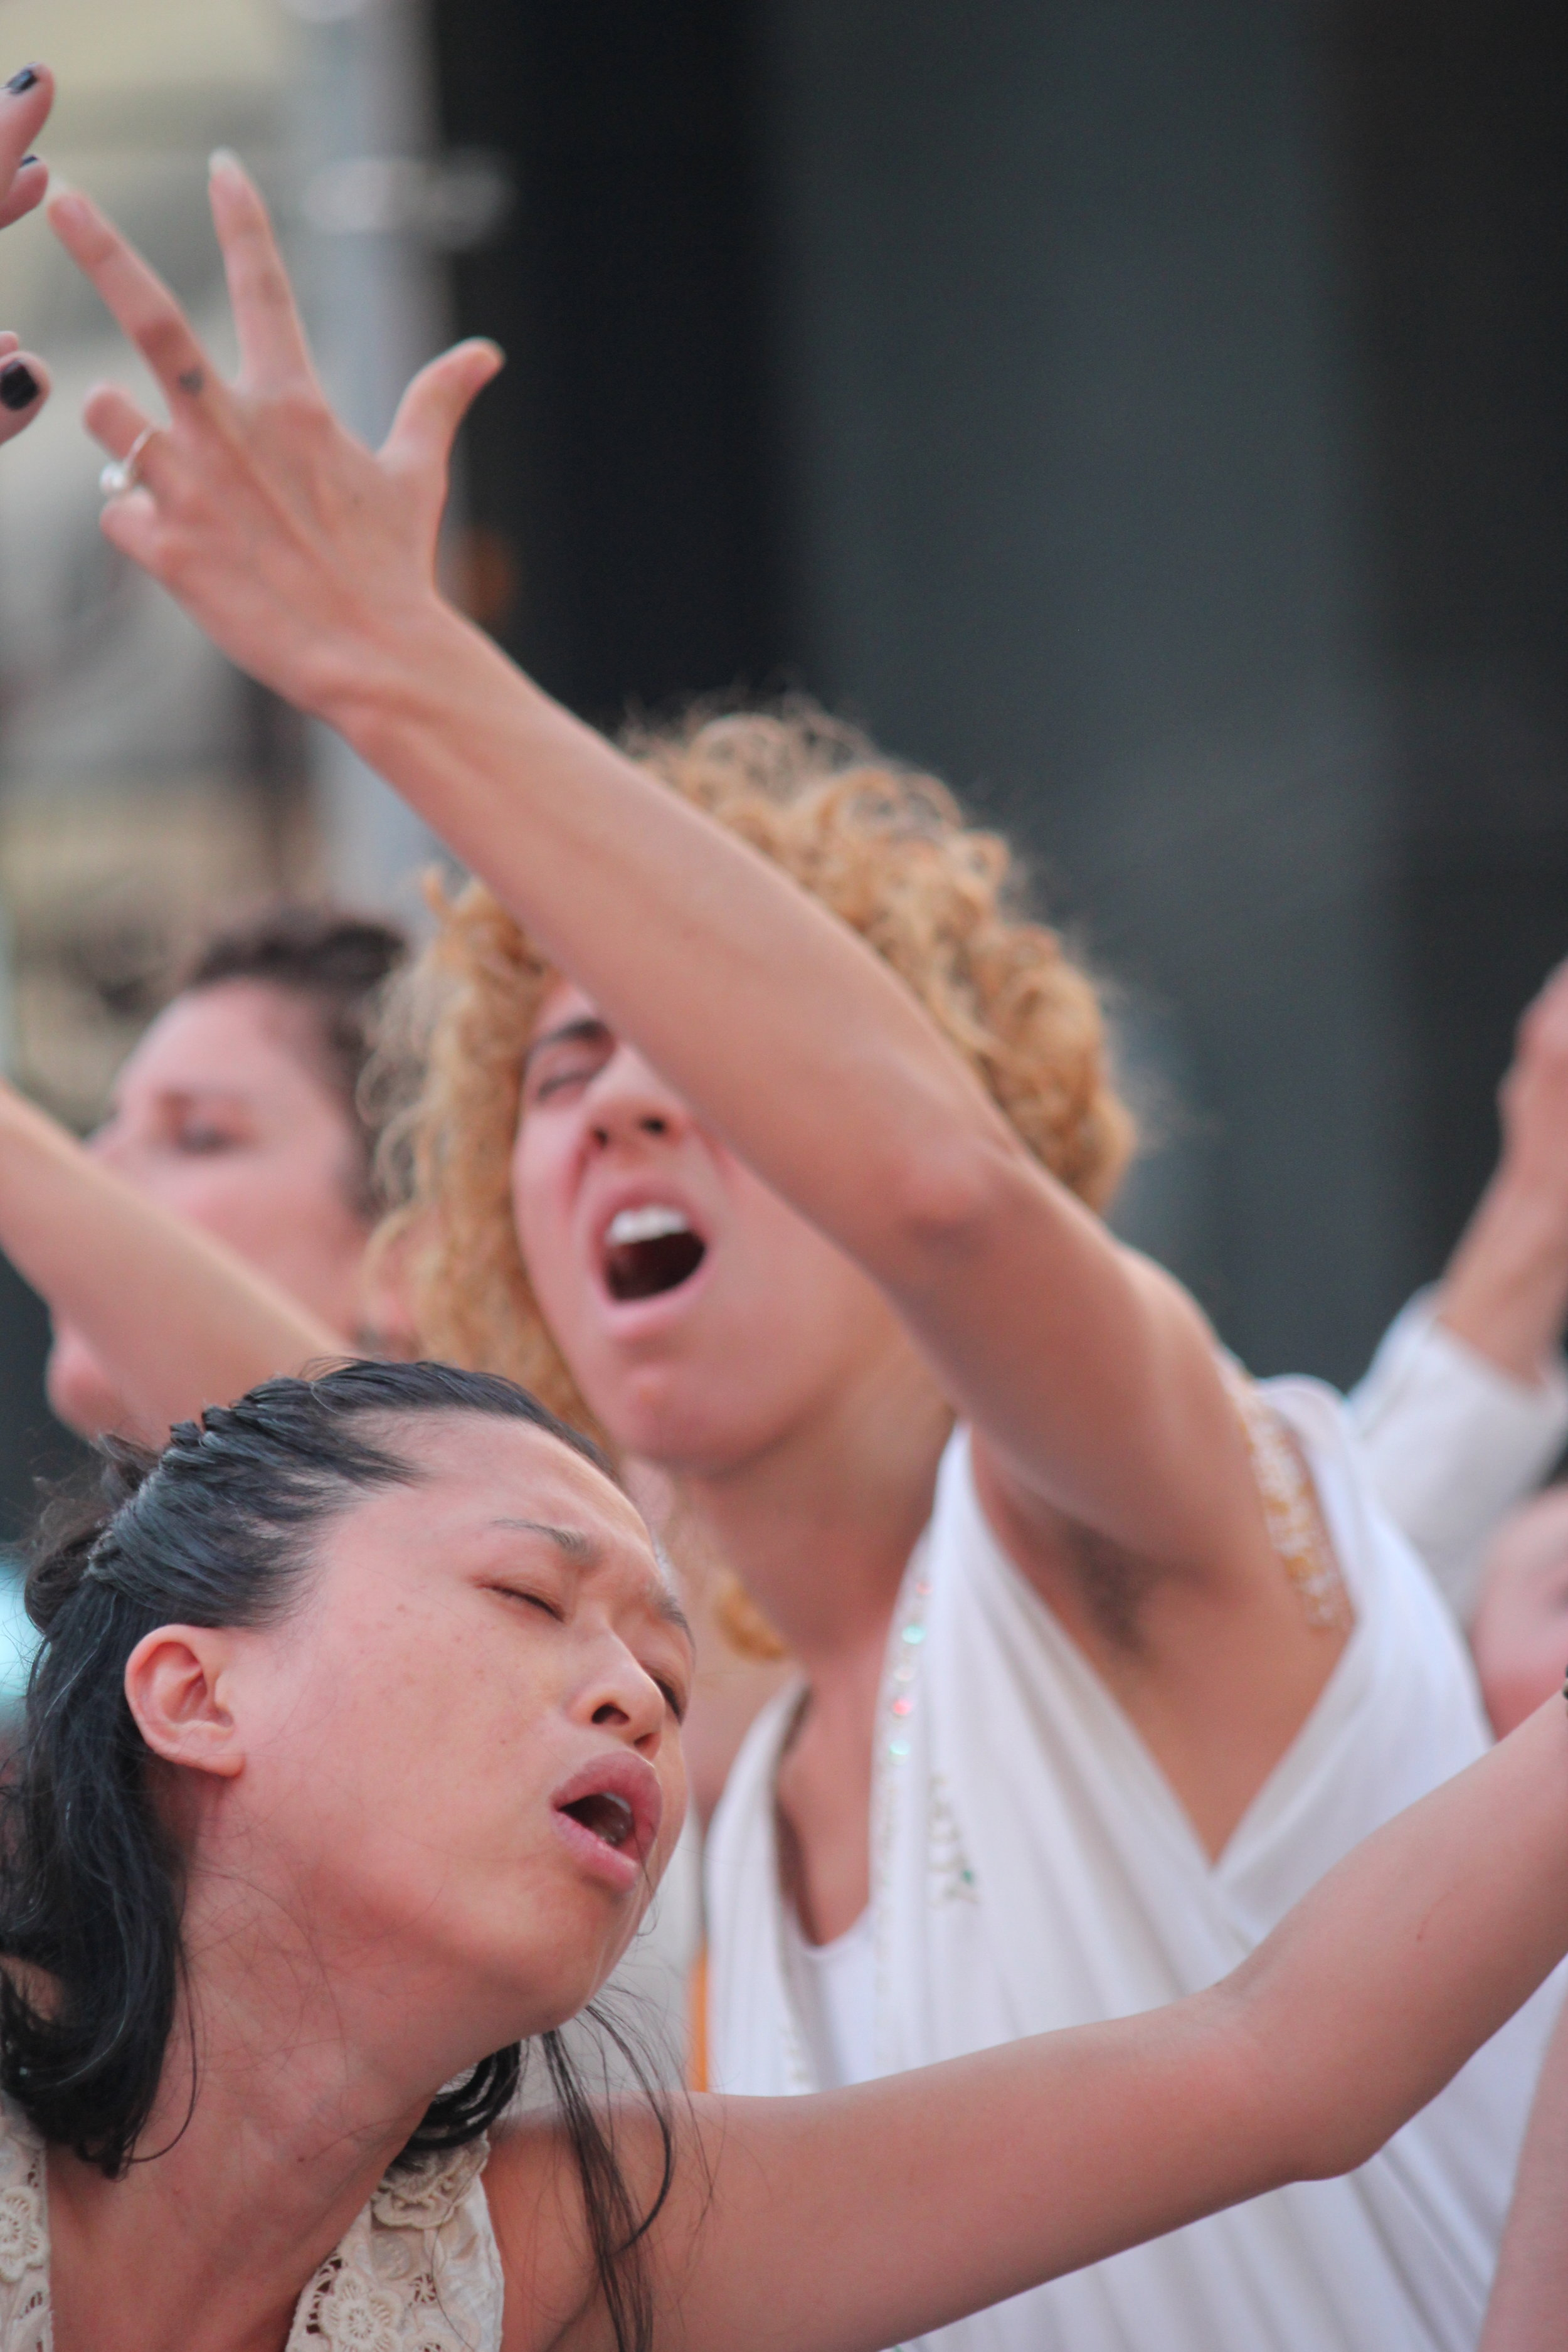 9/11 performance in Times Square - photo by Chris Carlone - Vangeline Theater and New York Butoh Institute